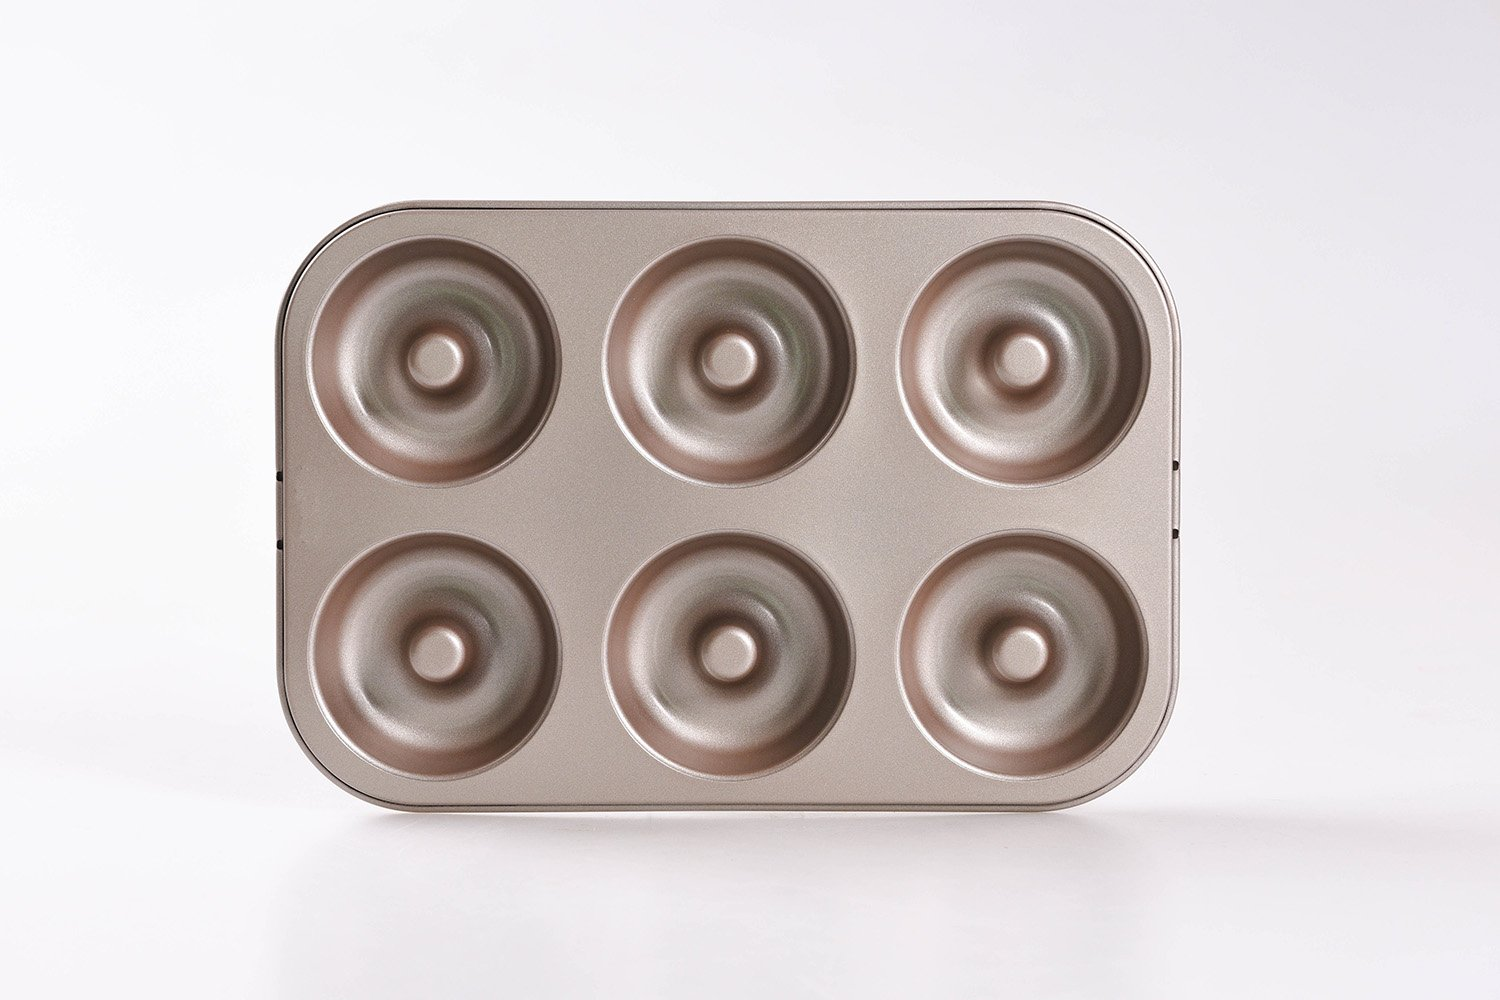 Bakerdream 6 Cavity Nonstick Donut Pan